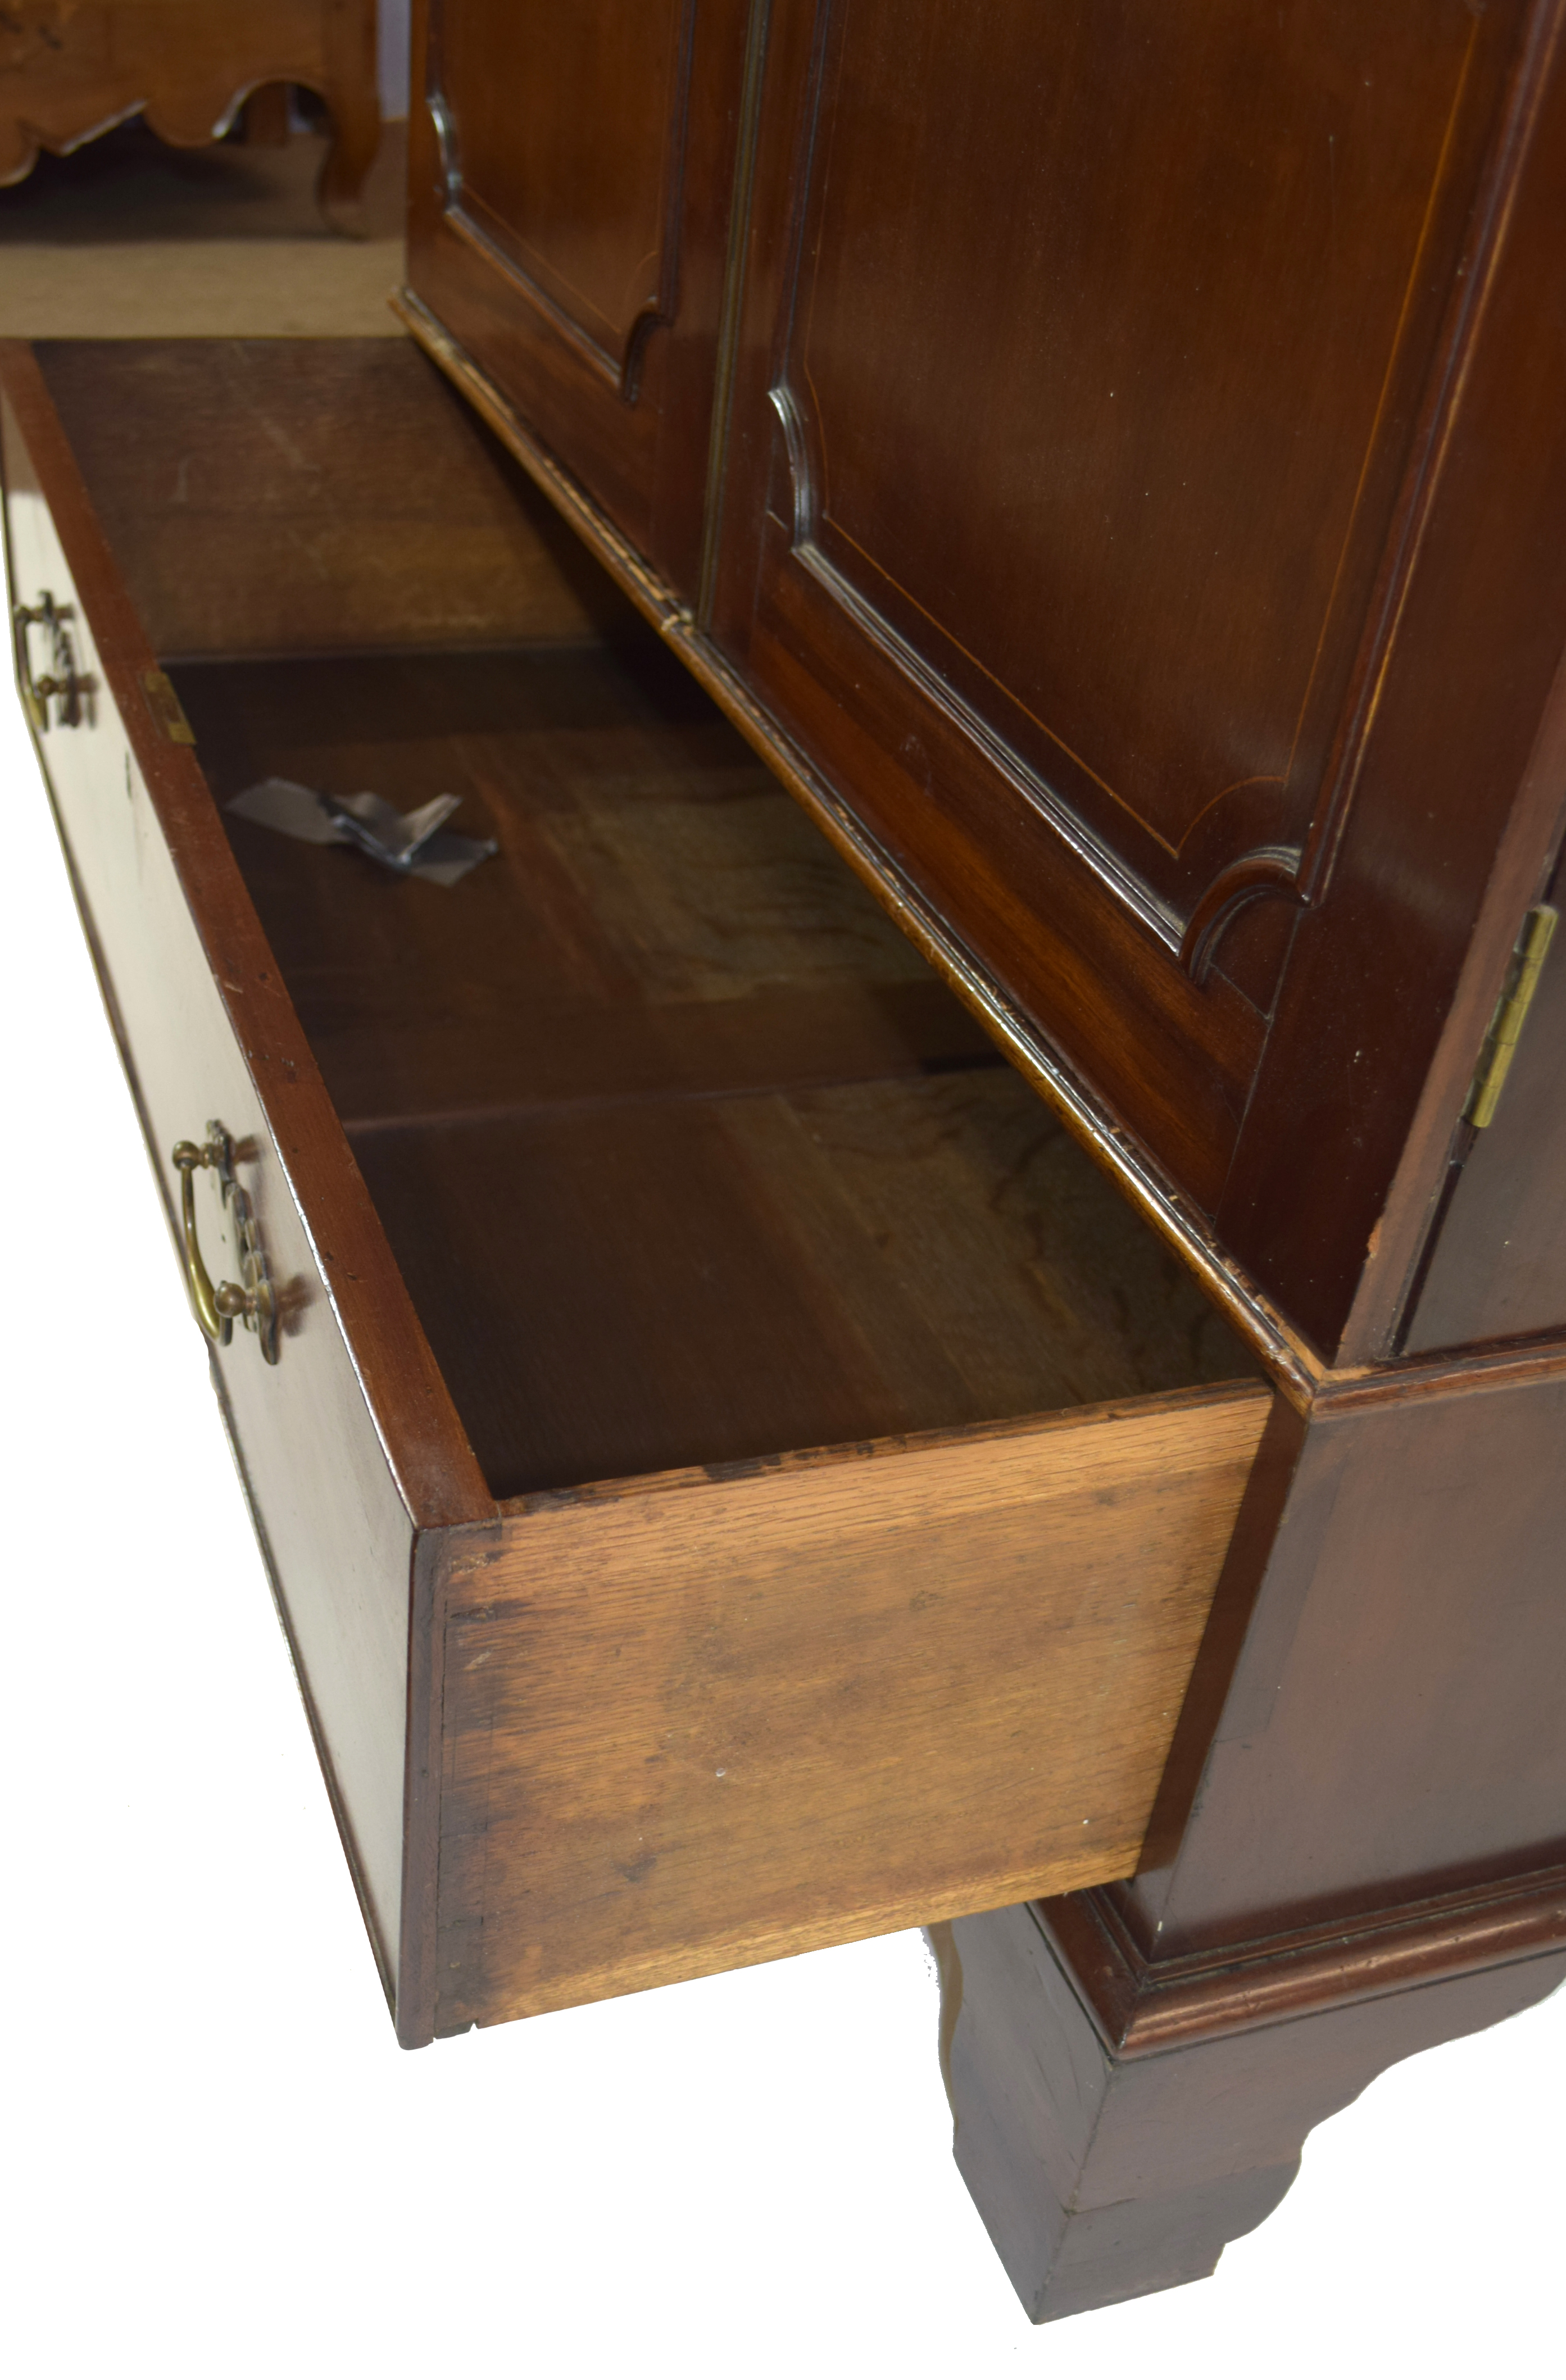 19th century mahogany wardrobe with moulded cornice over two panelled doors and single drawer - Image 5 of 6